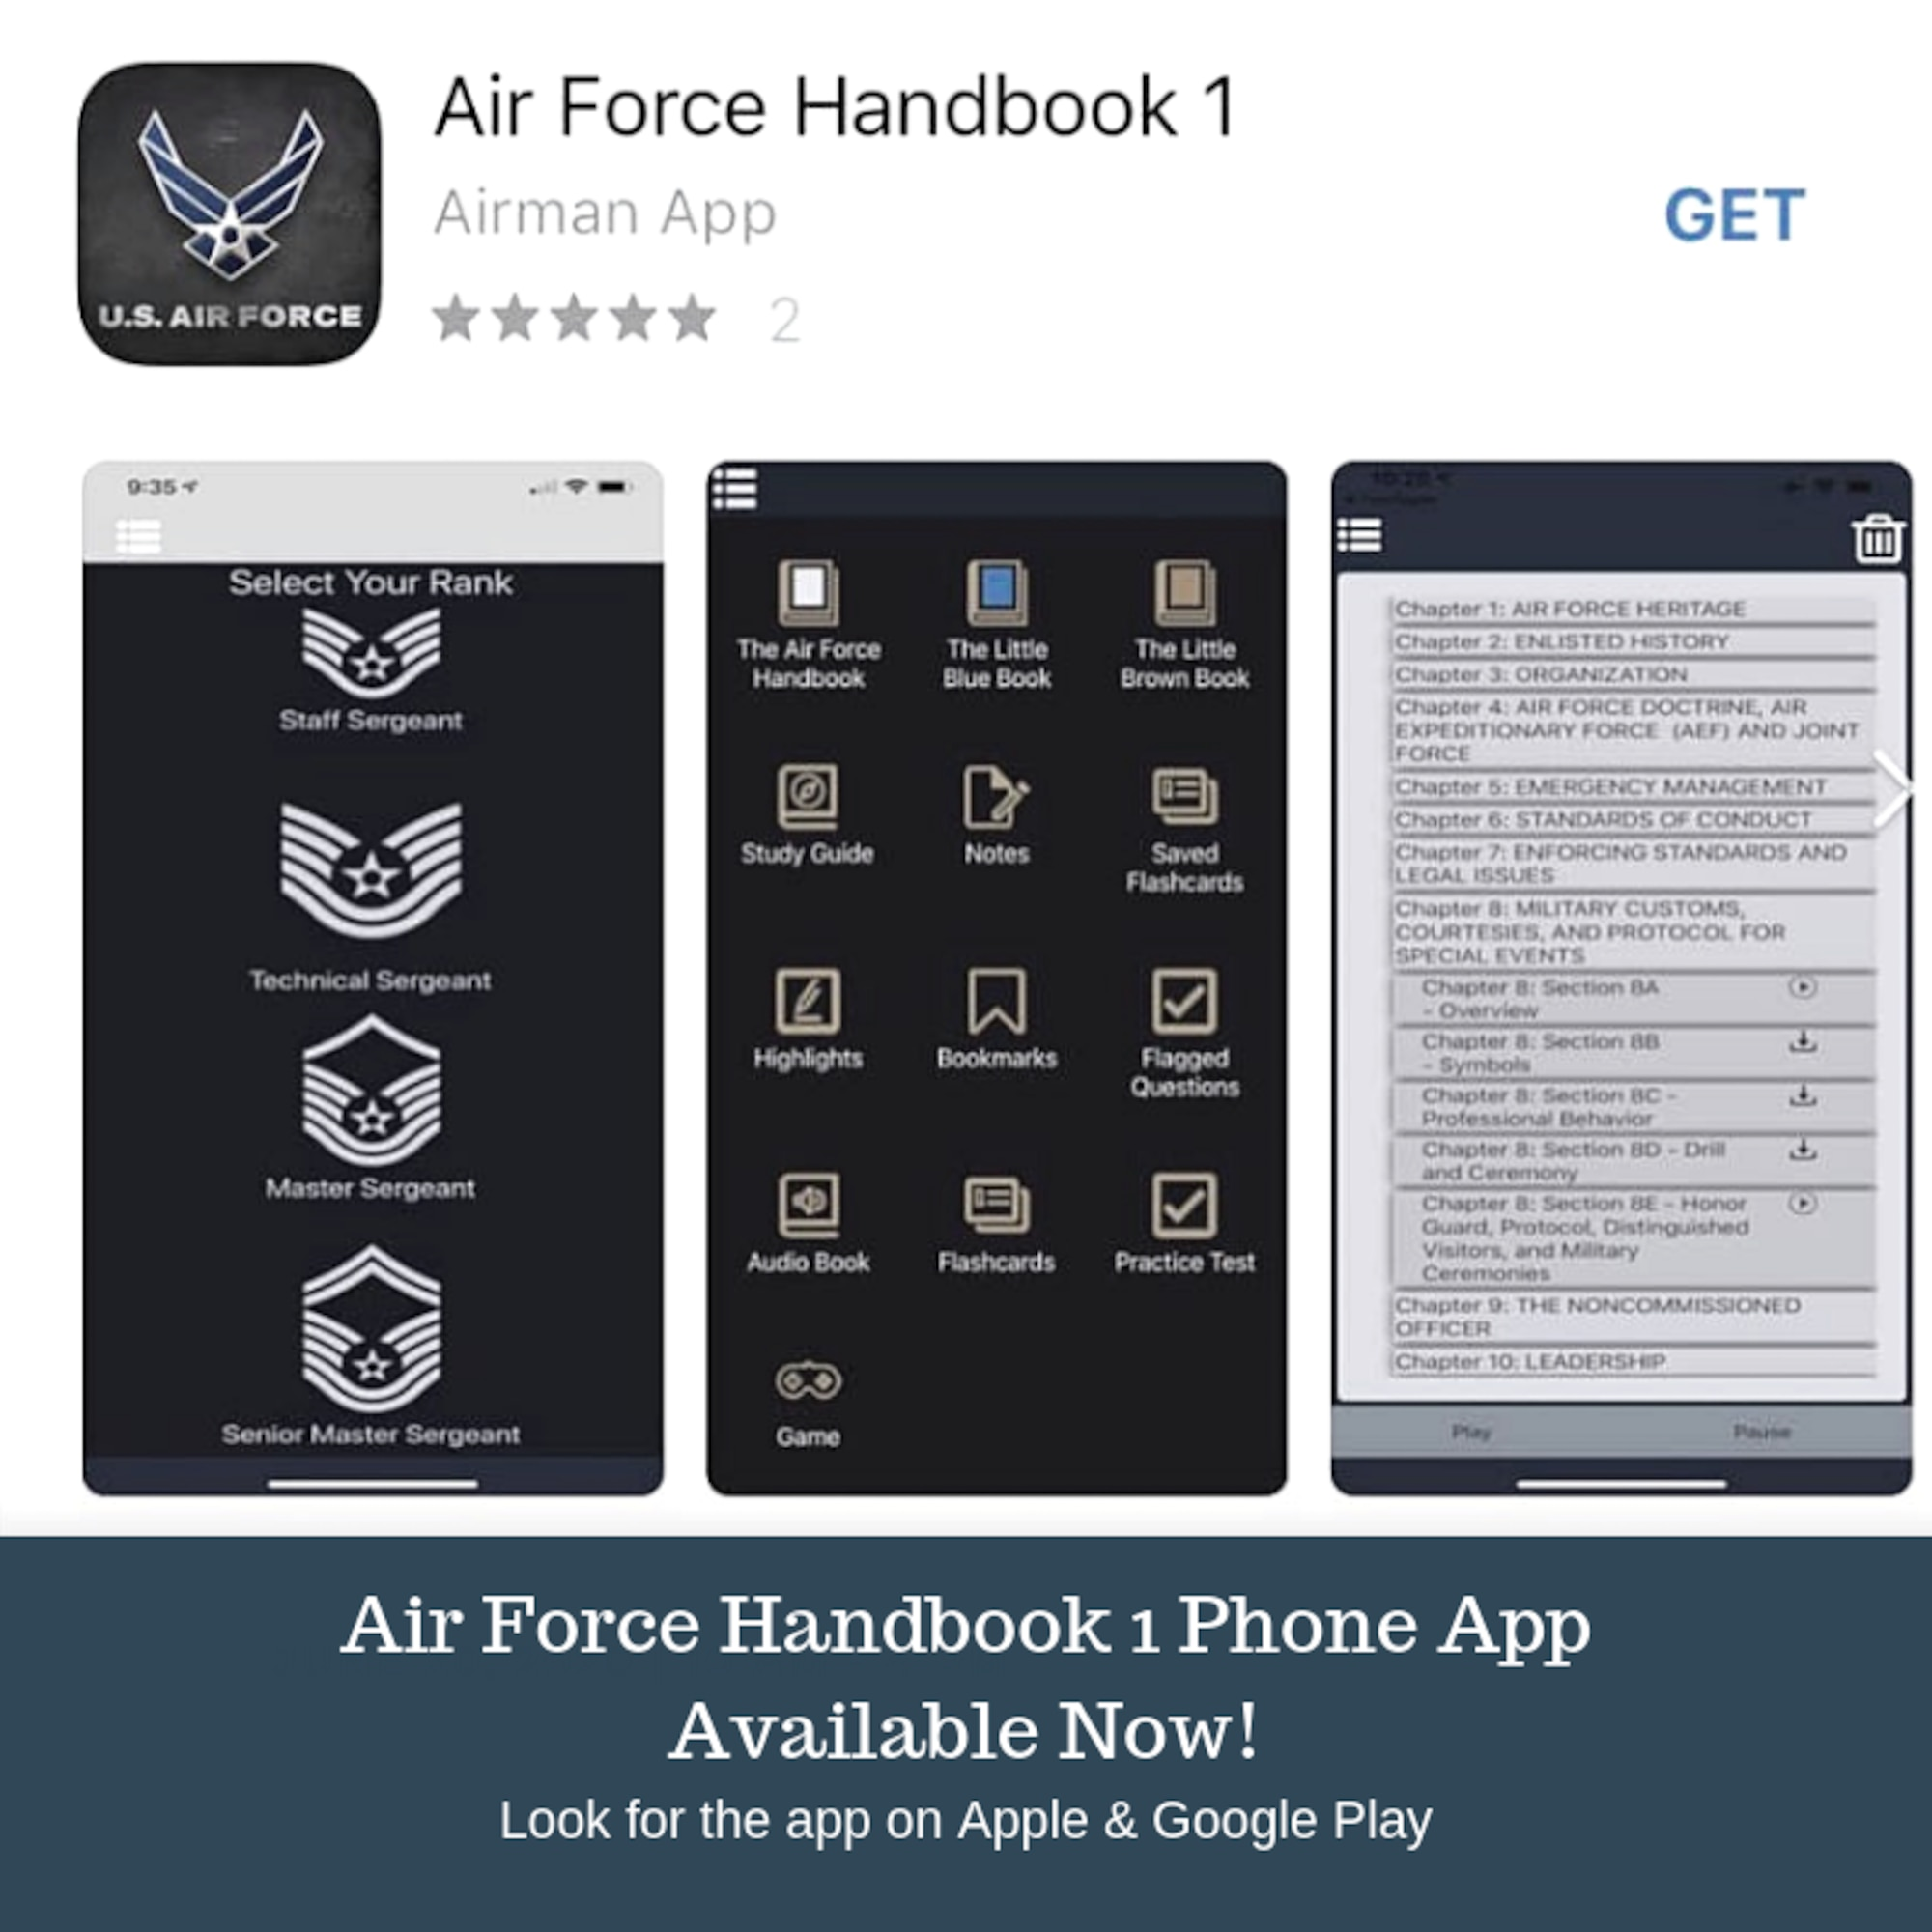 """The Air Force Handbook 1 phone application, available beginning Sept. 6, 2019, on both Apple and Google Play, includes the AFH1 and a study guide, as well as Air Force Instruction 36-2618, The Enlisted Force Structure, known as the """"The Little Brown Book.""""  There is also access to the """"The Little Blue Book"""" focused on the profession of arms, as well as tools such as flash cards, audio and practice tests designed to help prepare Airmen for promotion testing. (U.S. Air Force graphic/Dan Hawkins)"""